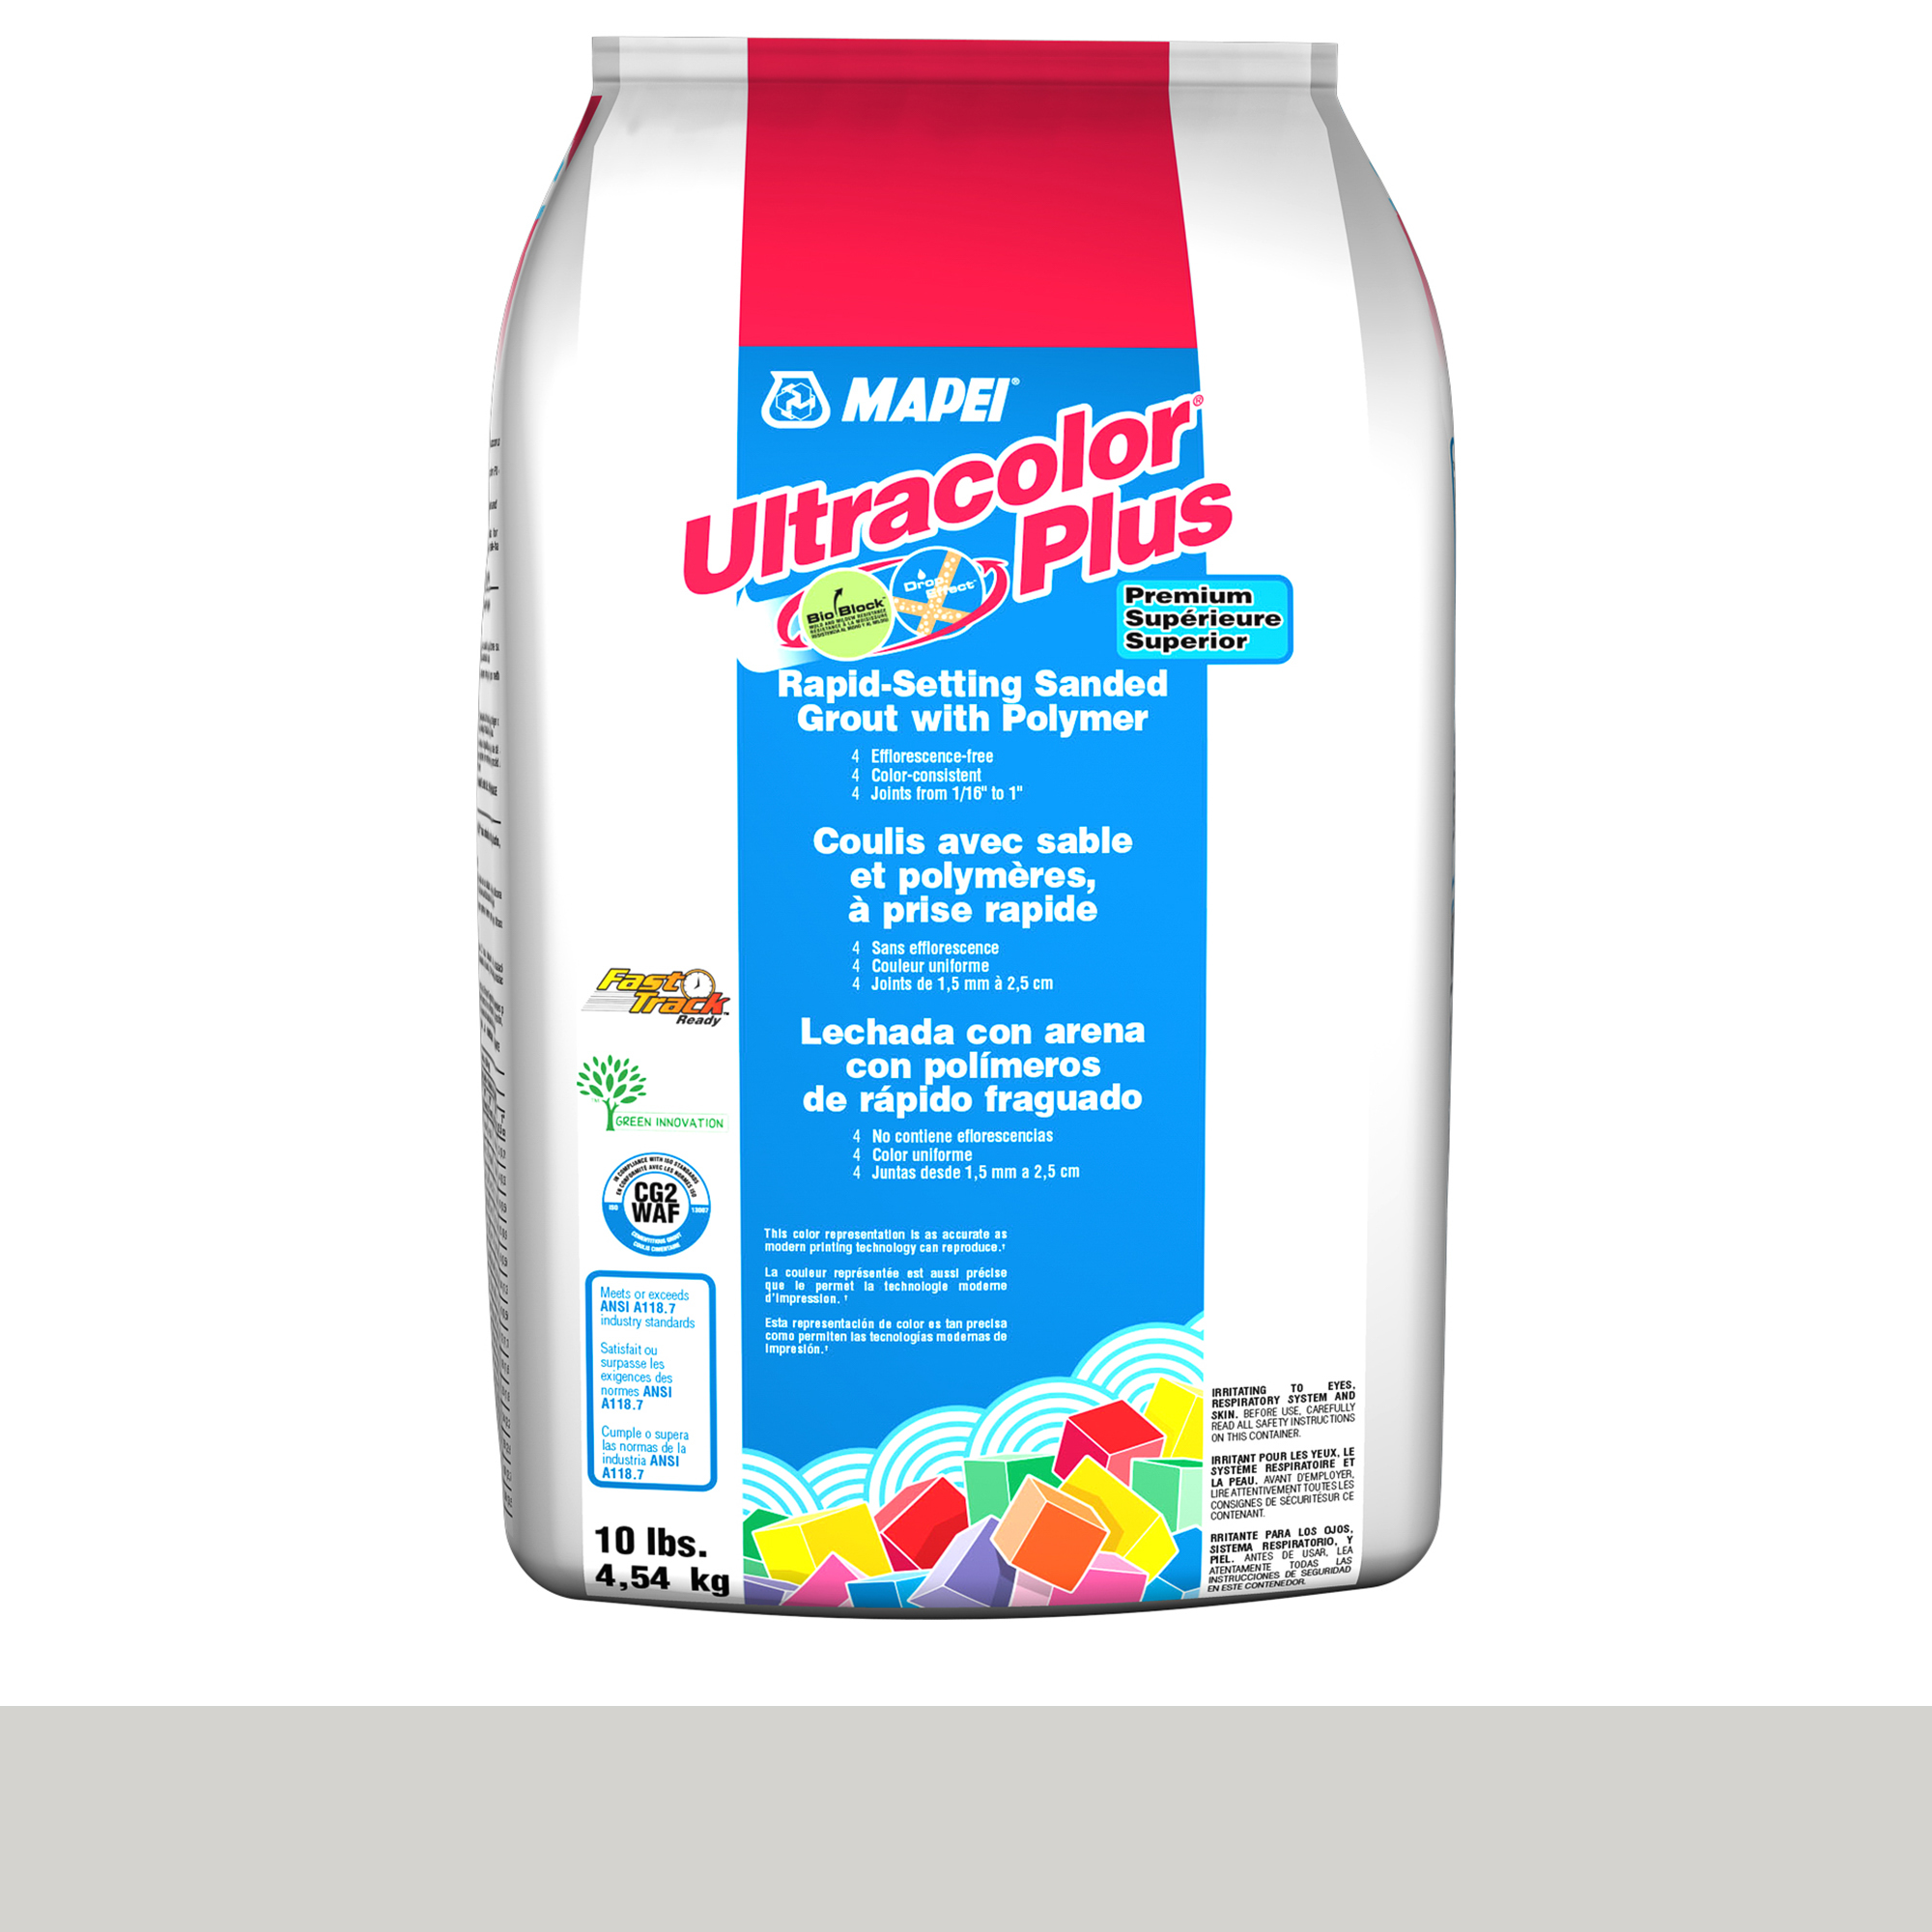 Mapei Ultracolor Plus Fa 93-Warm Grey 10-Lb Bag Grout Sanded product photo